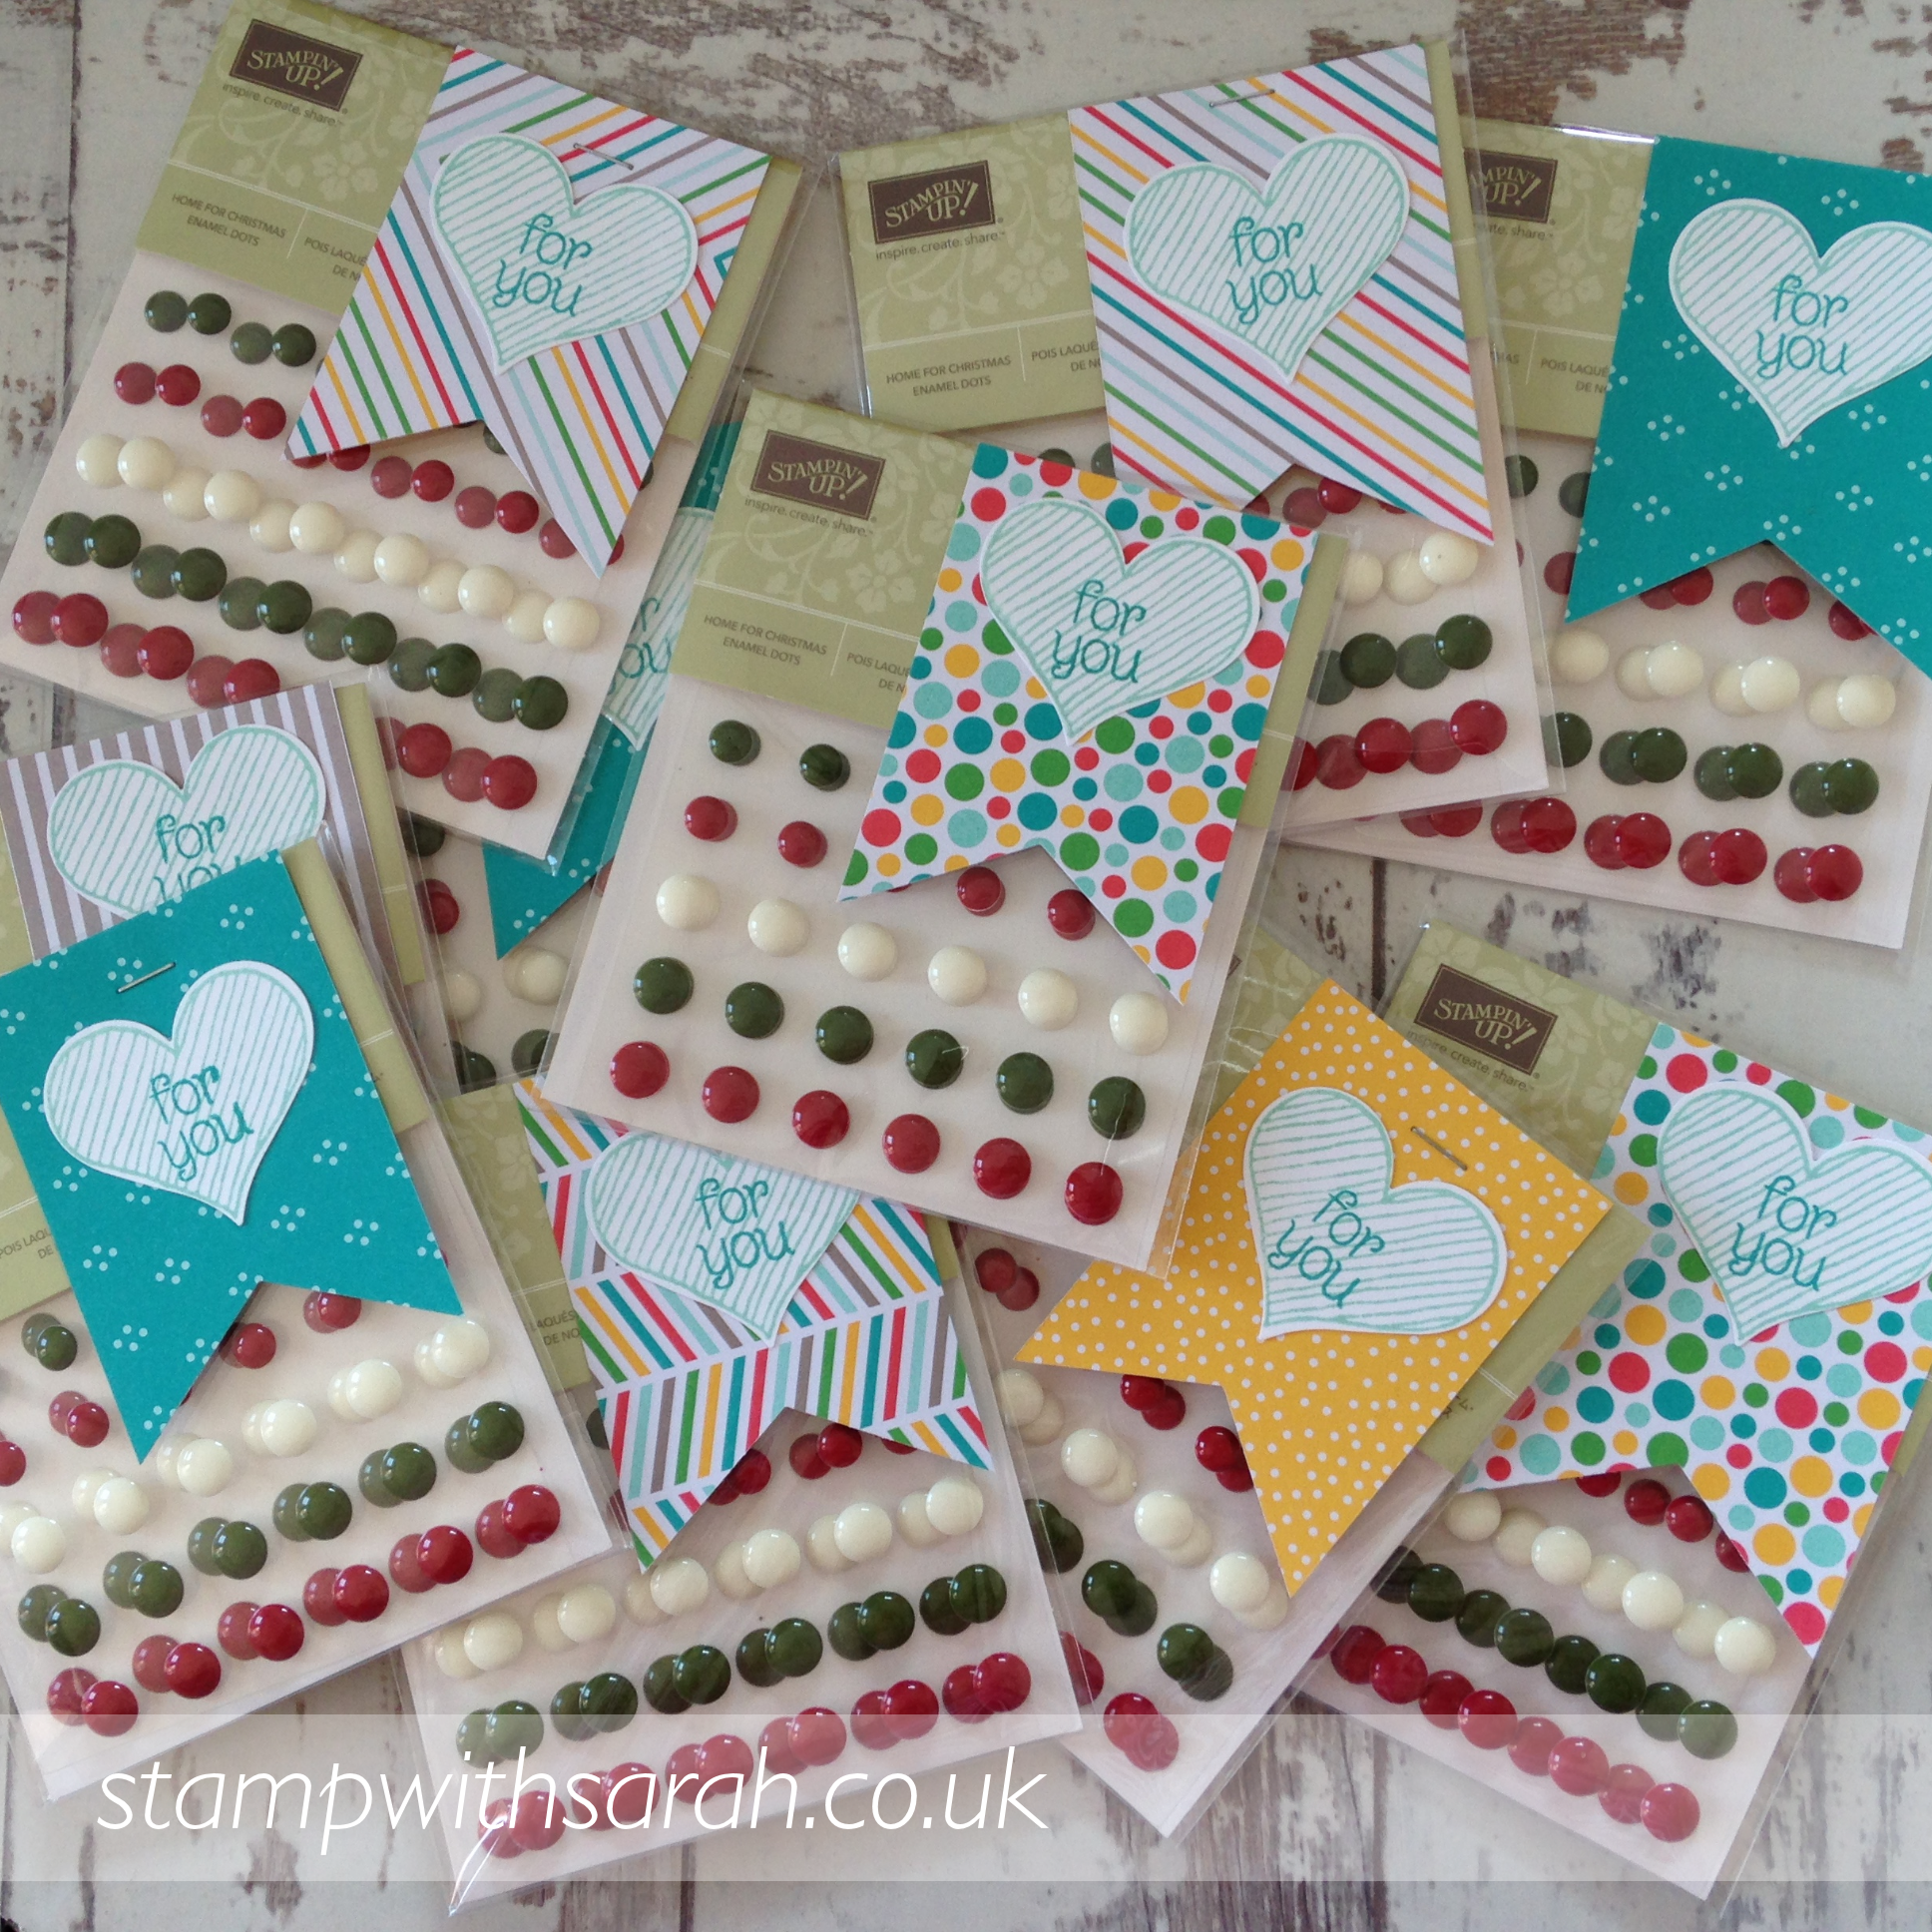 August Code Club Gifts for Stamp with Sarah customers by Stampin' Up! UK